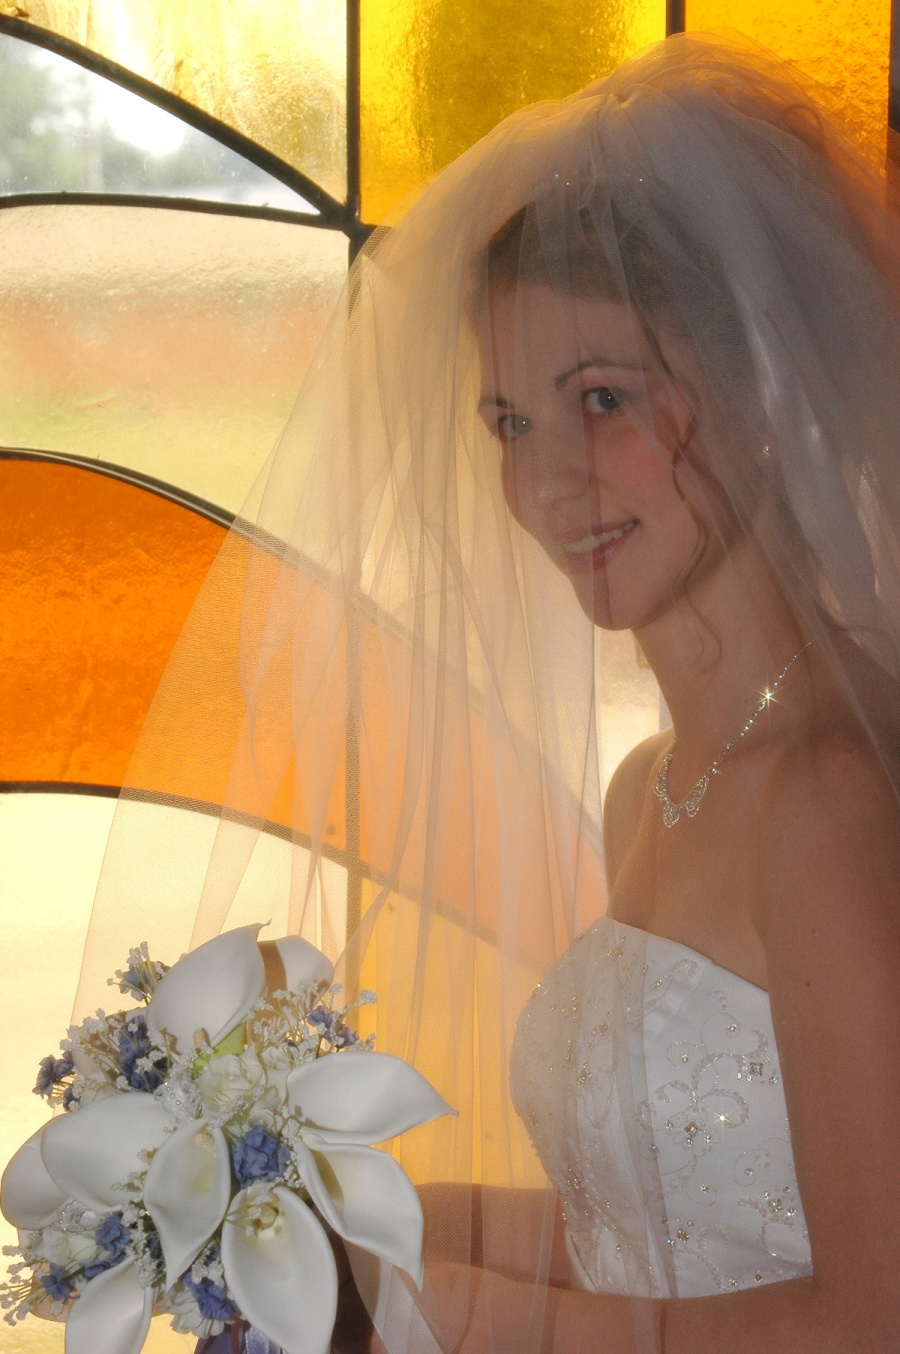 8x10-ish-bride-with-bouquet-stained-glass-e1469046541965